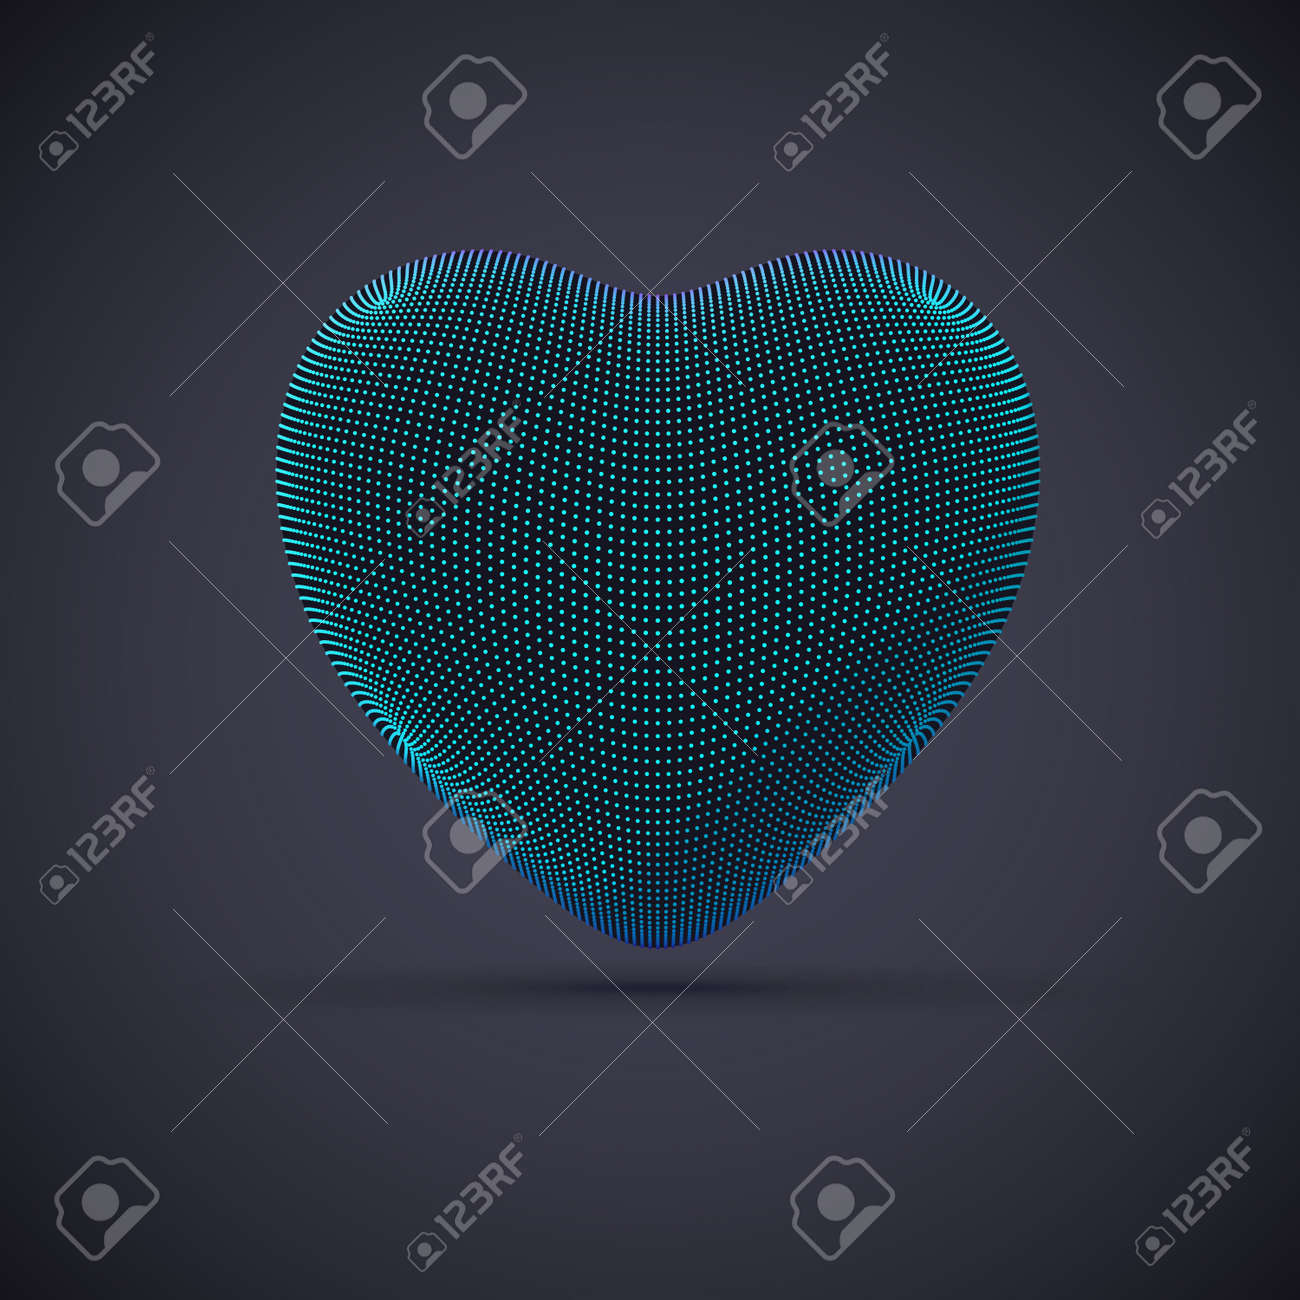 3D digital futuristic blue heart on gray background. Abstract vector illustration of online dating and virtual love. Concept of digital technology in medicine. Greeting postcard for Valentines Day. - 160183570